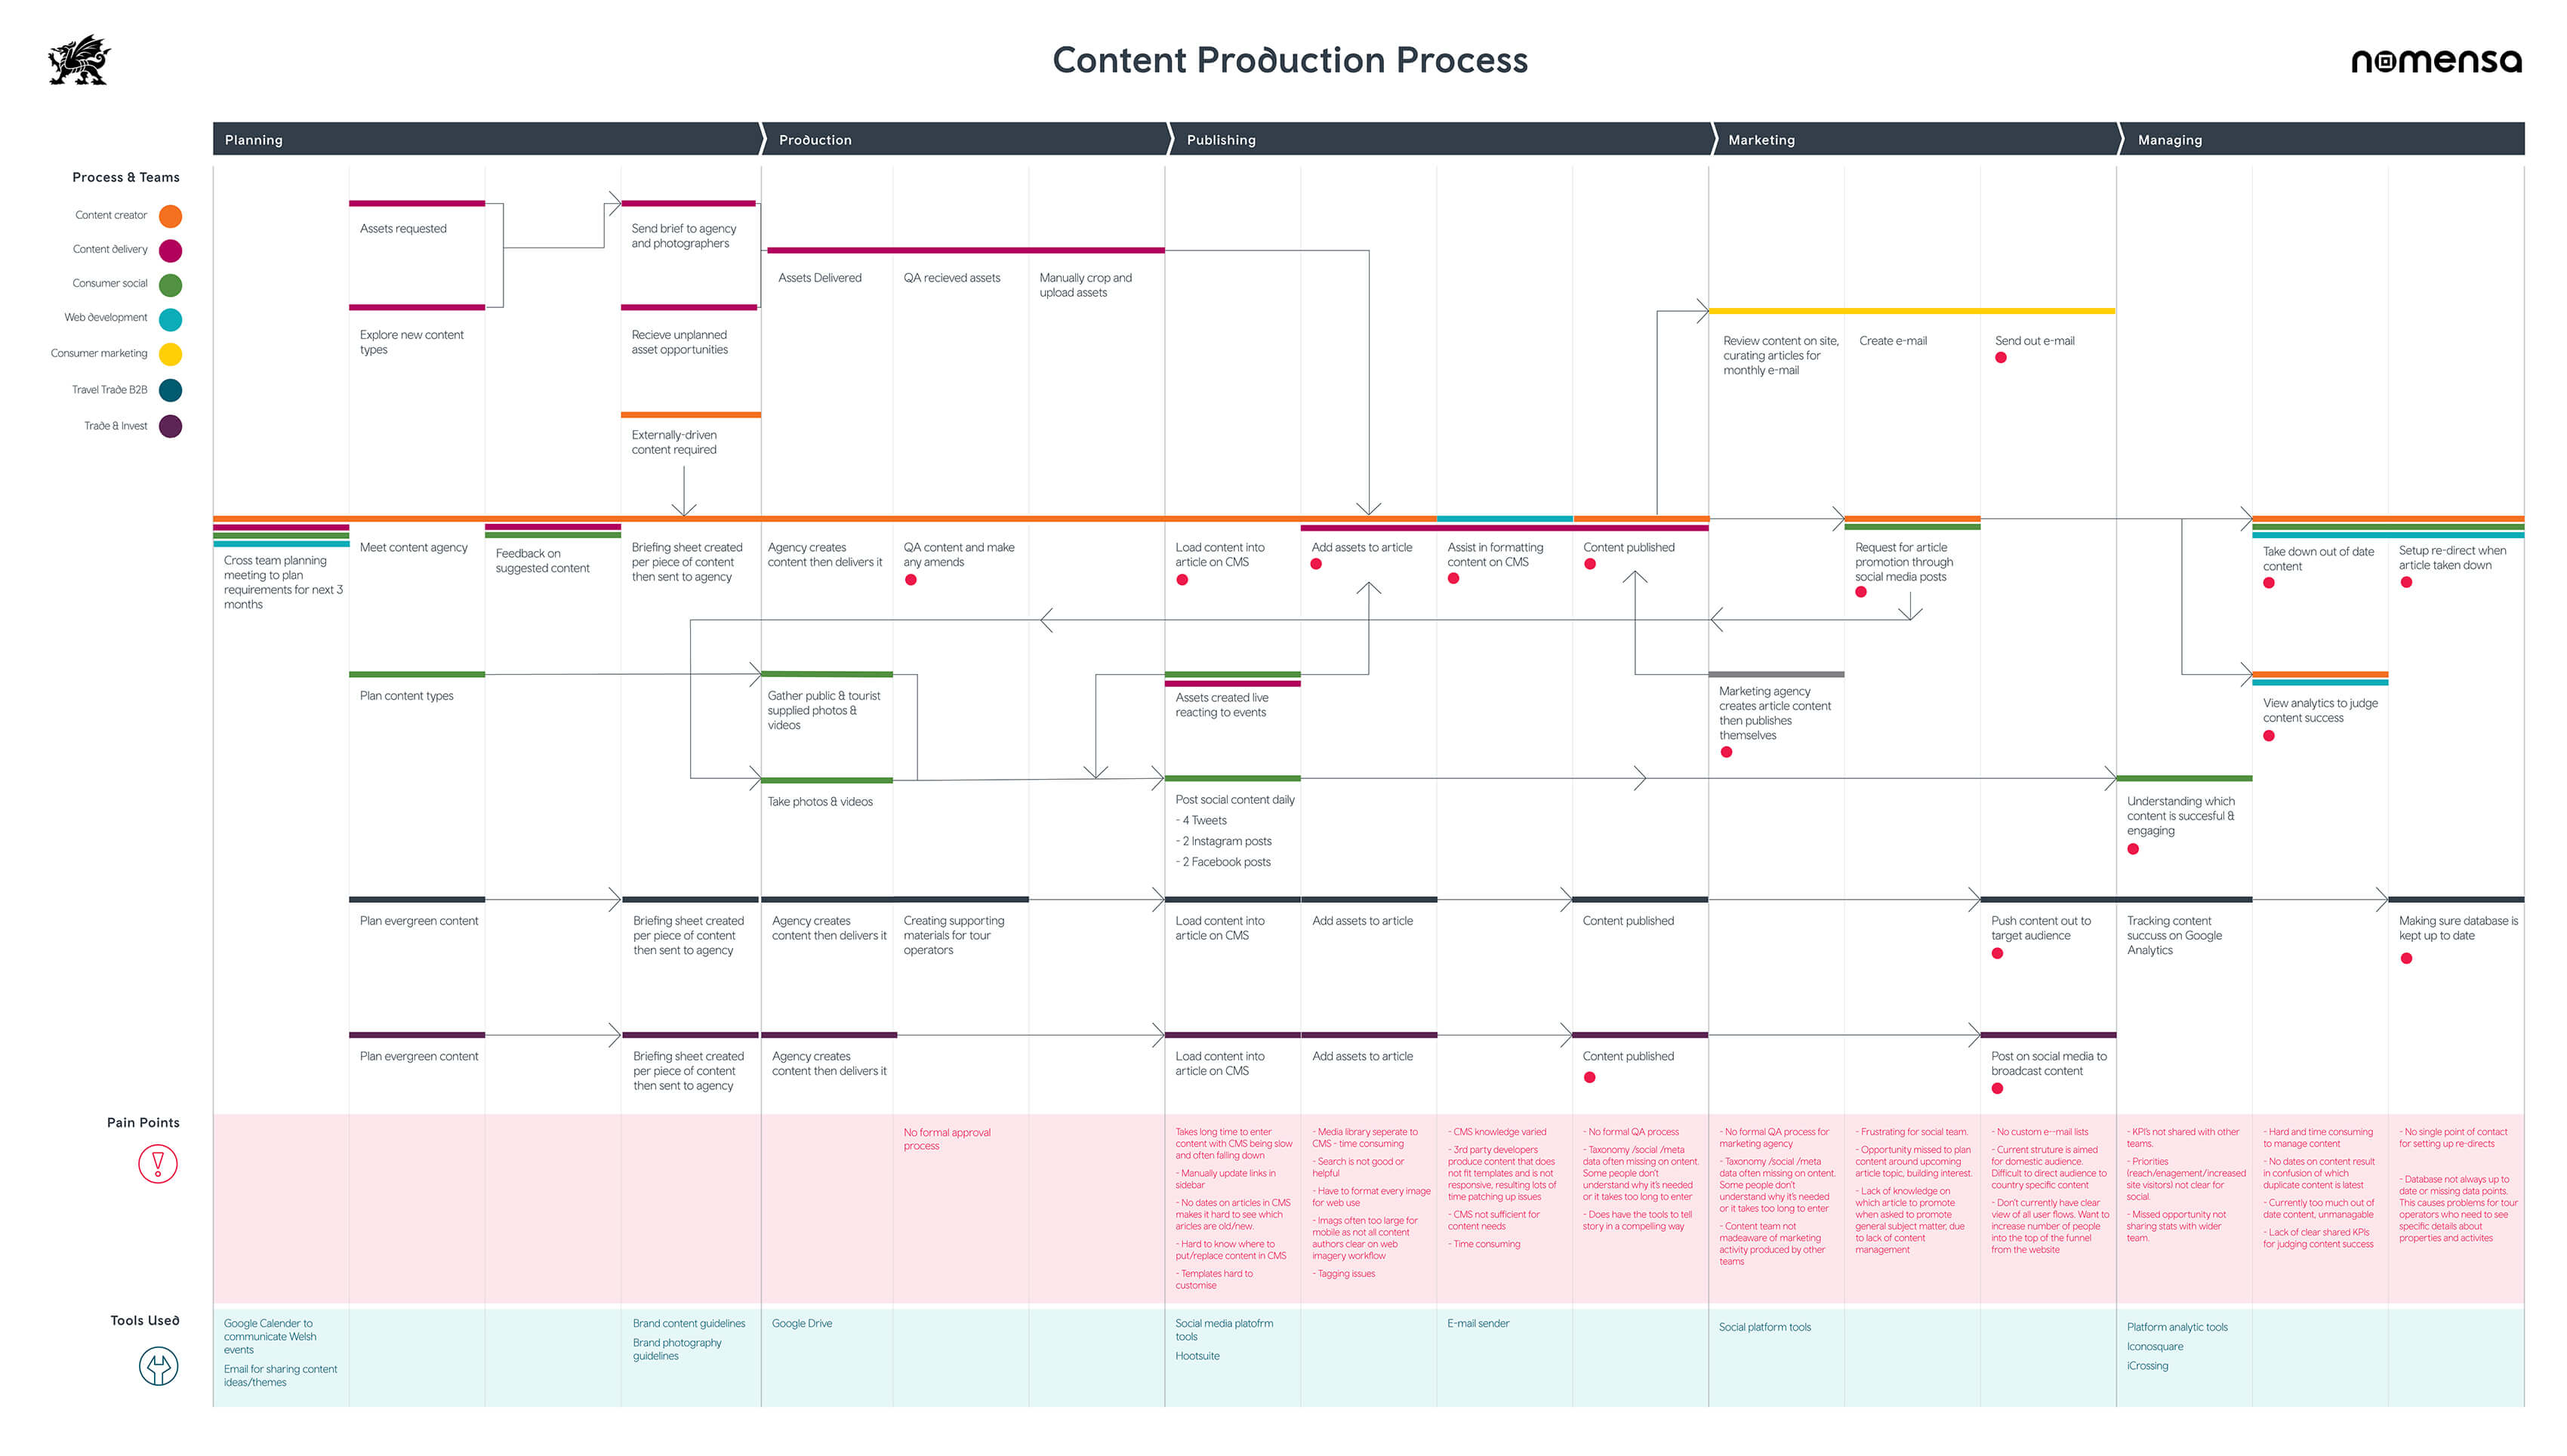 Experience map produced after interviewing key stakeholders from each production department